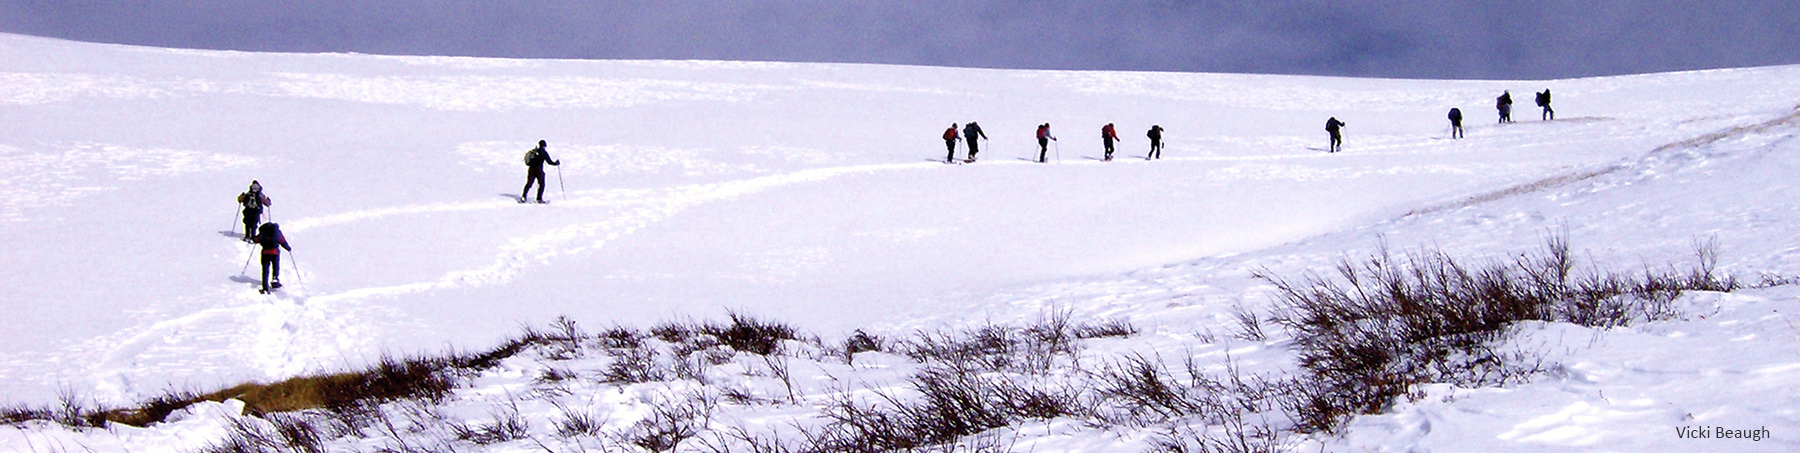 Snowshoe Hikers V Beaugh f